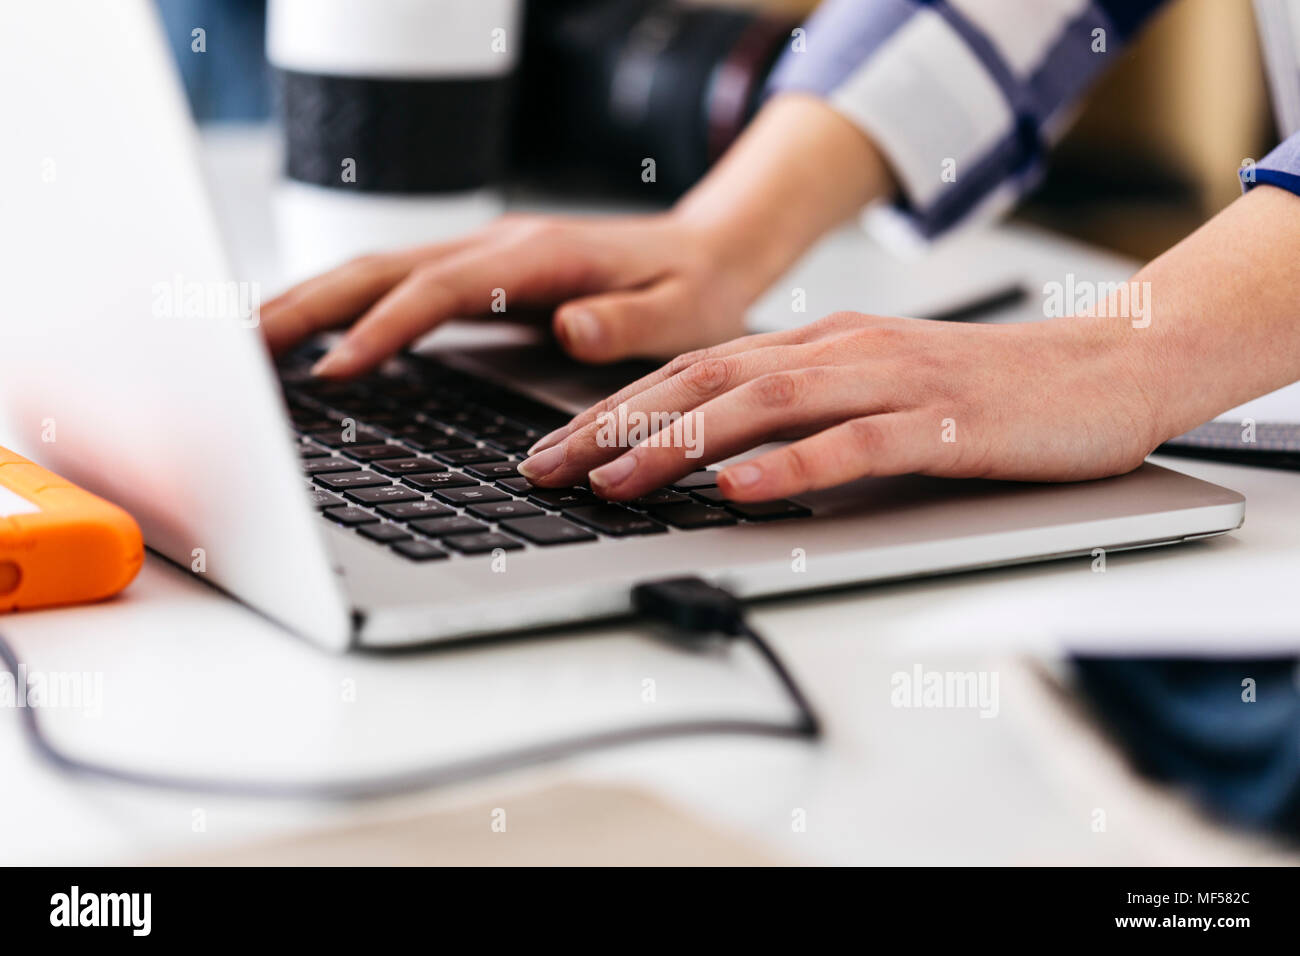 Close-up of woman using laptop at desk - Stock Image